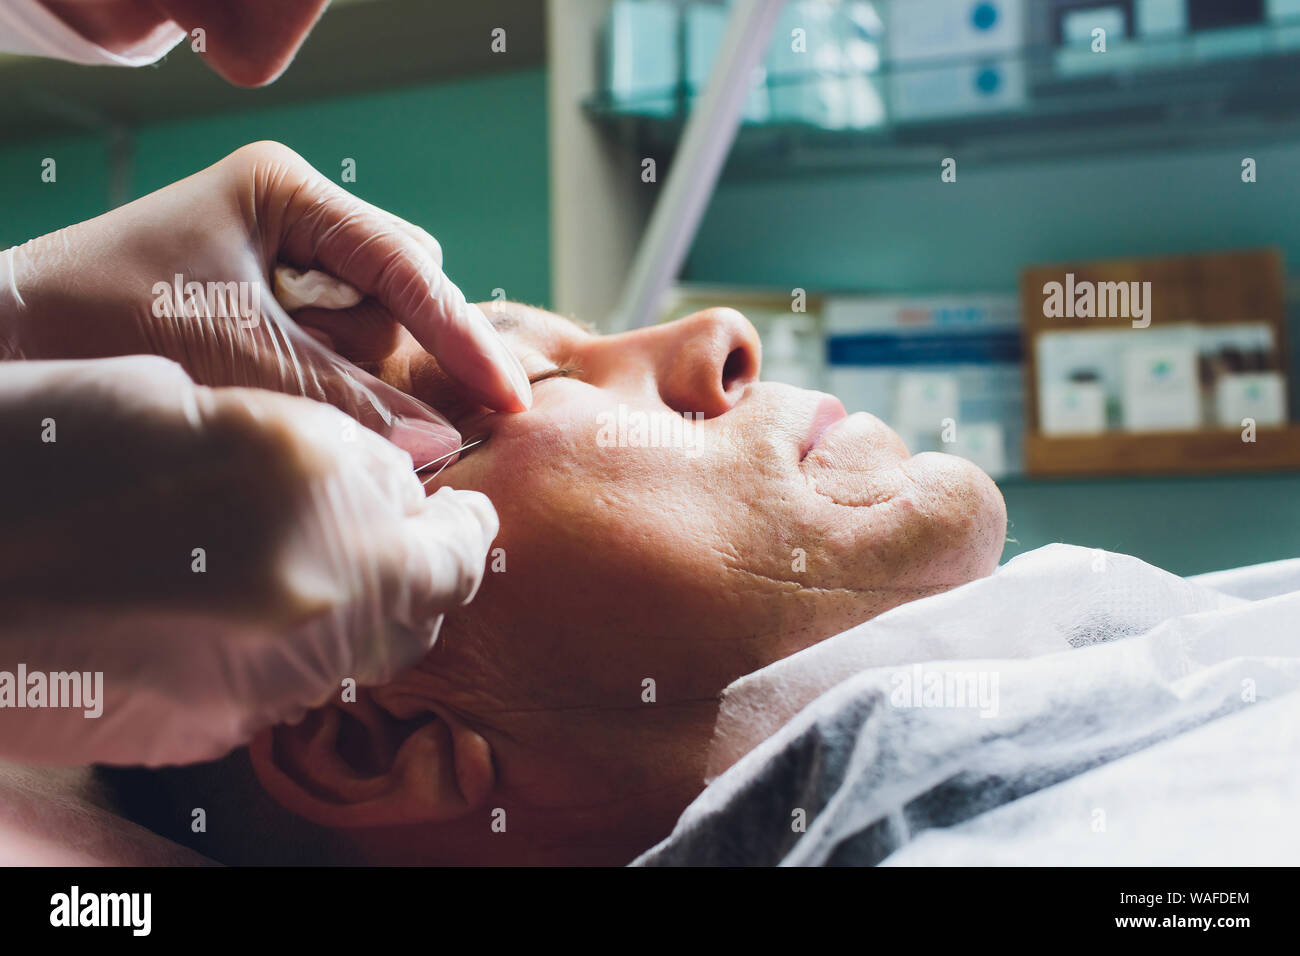 Close-up of procedure for face lifting PDO Suture operation